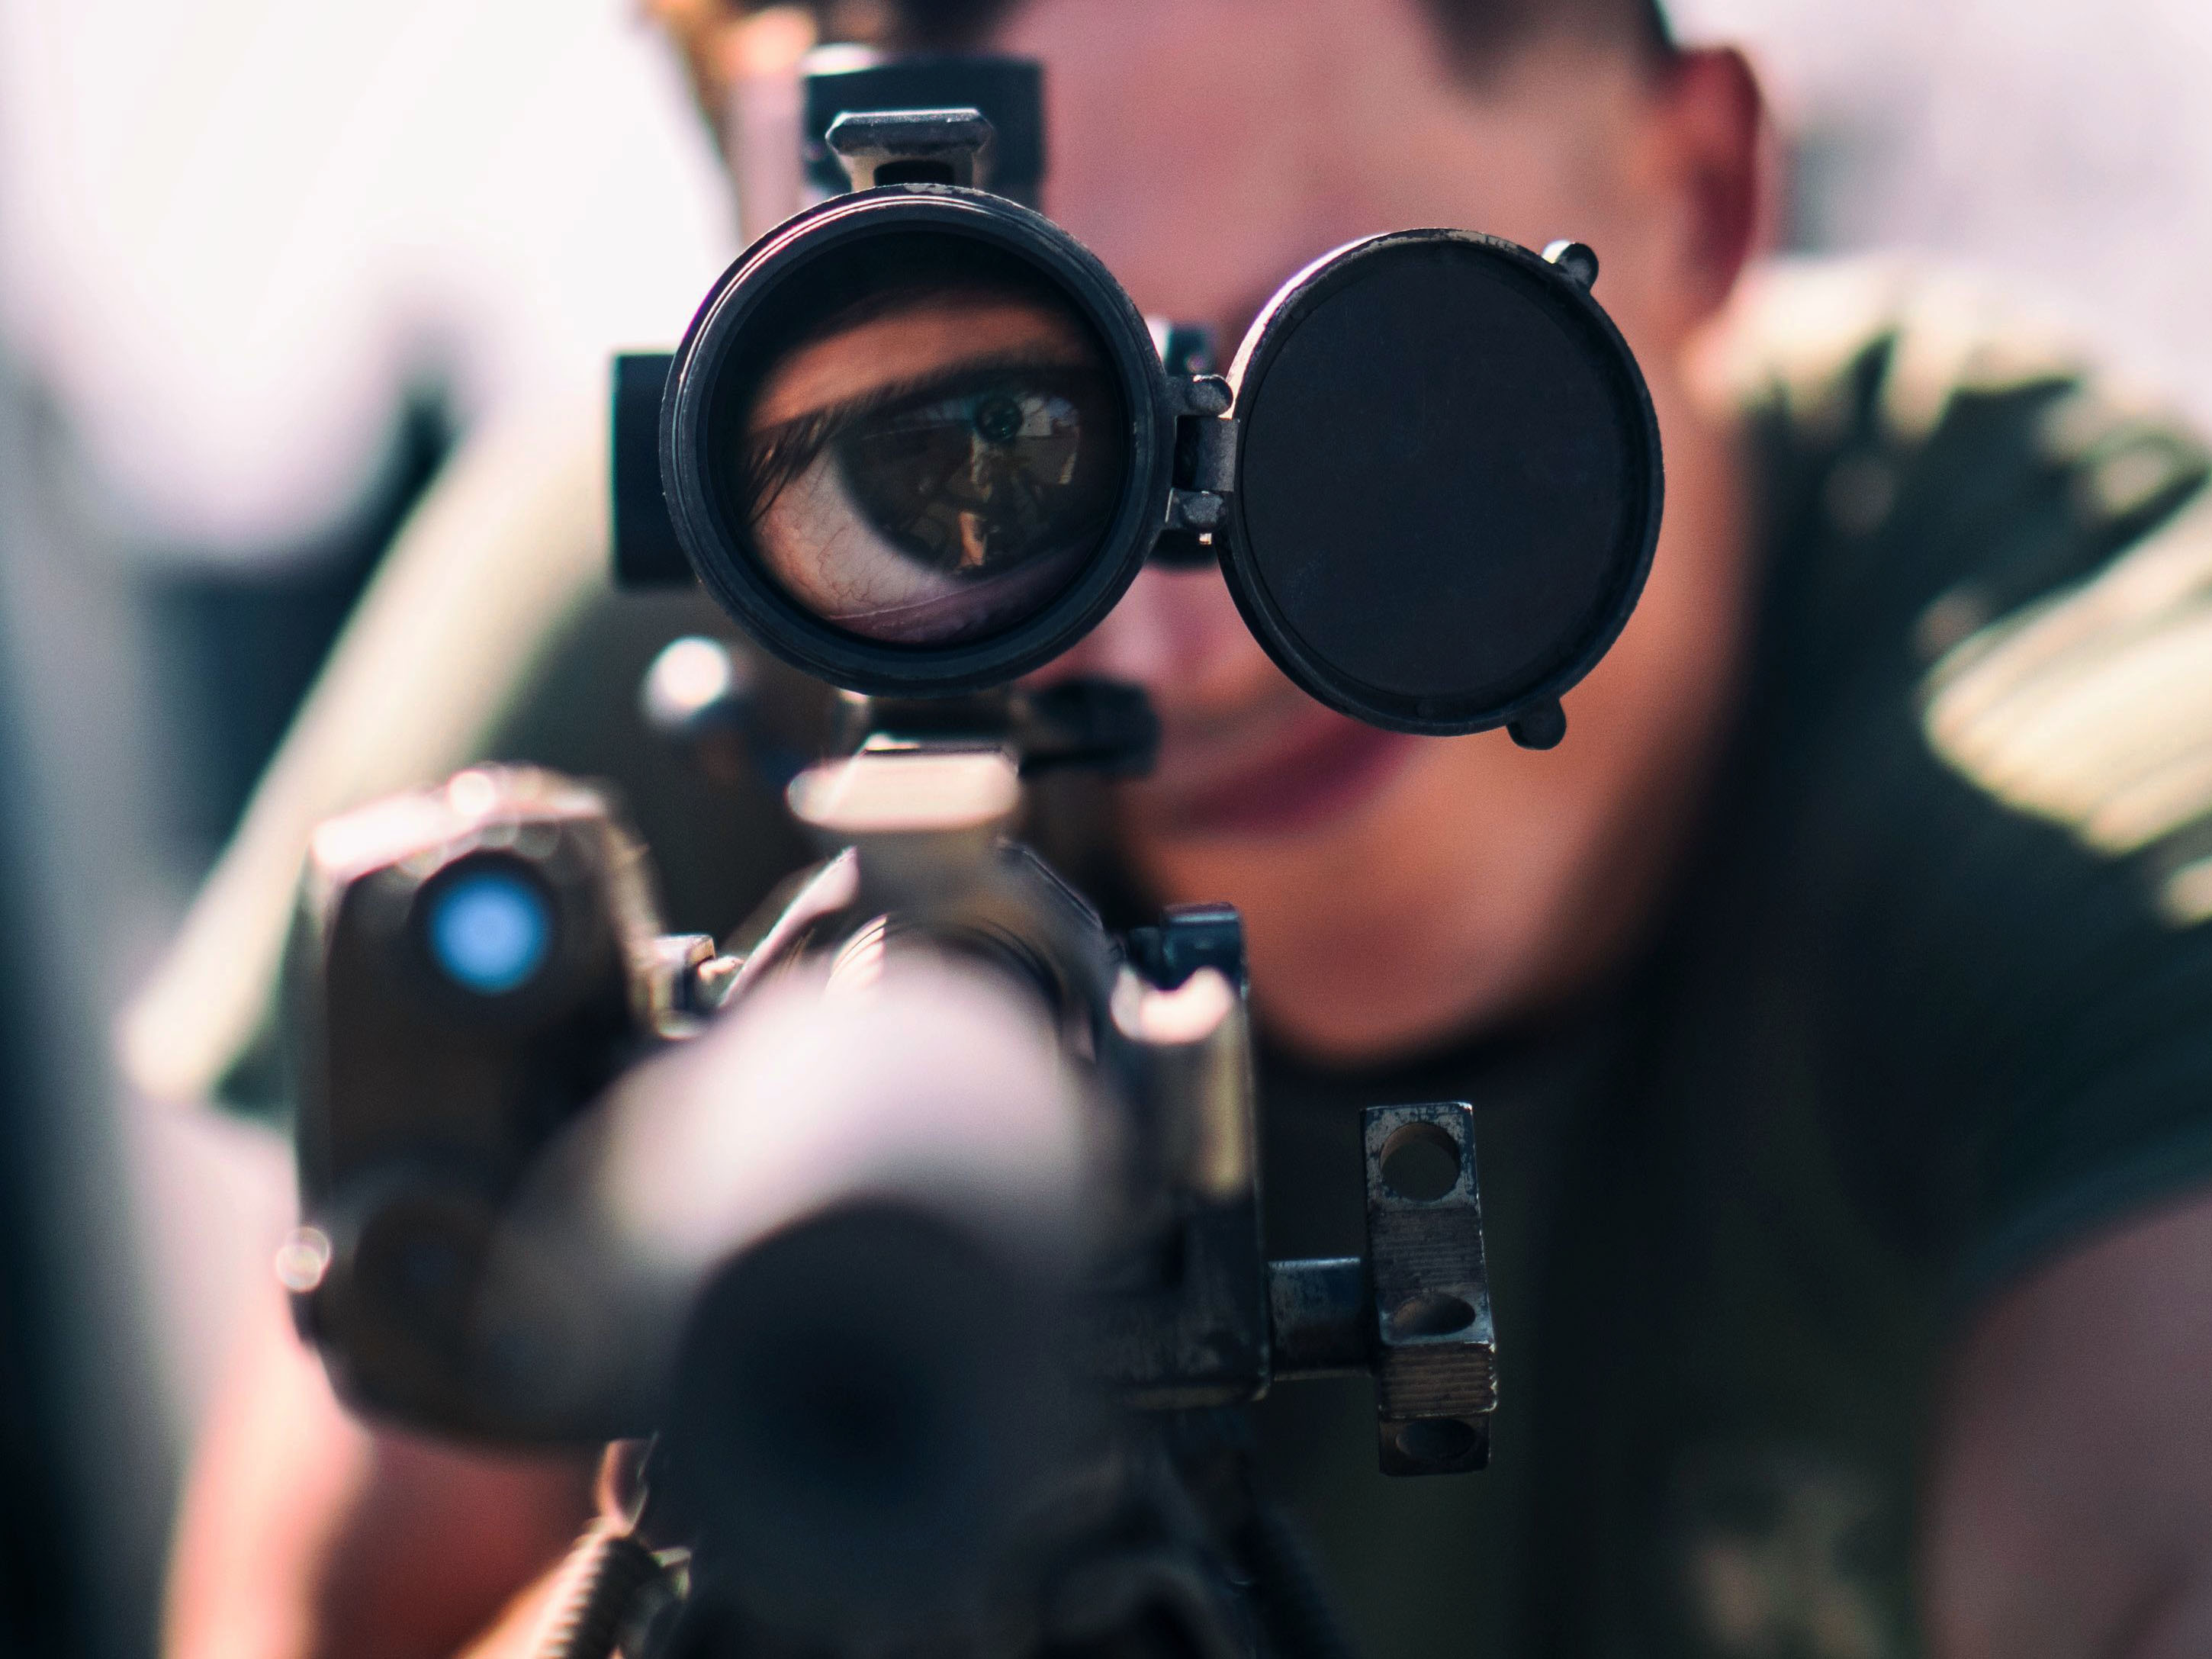 A Canadian sniper reportedly shot an ISIS fighter from over 2 miles away